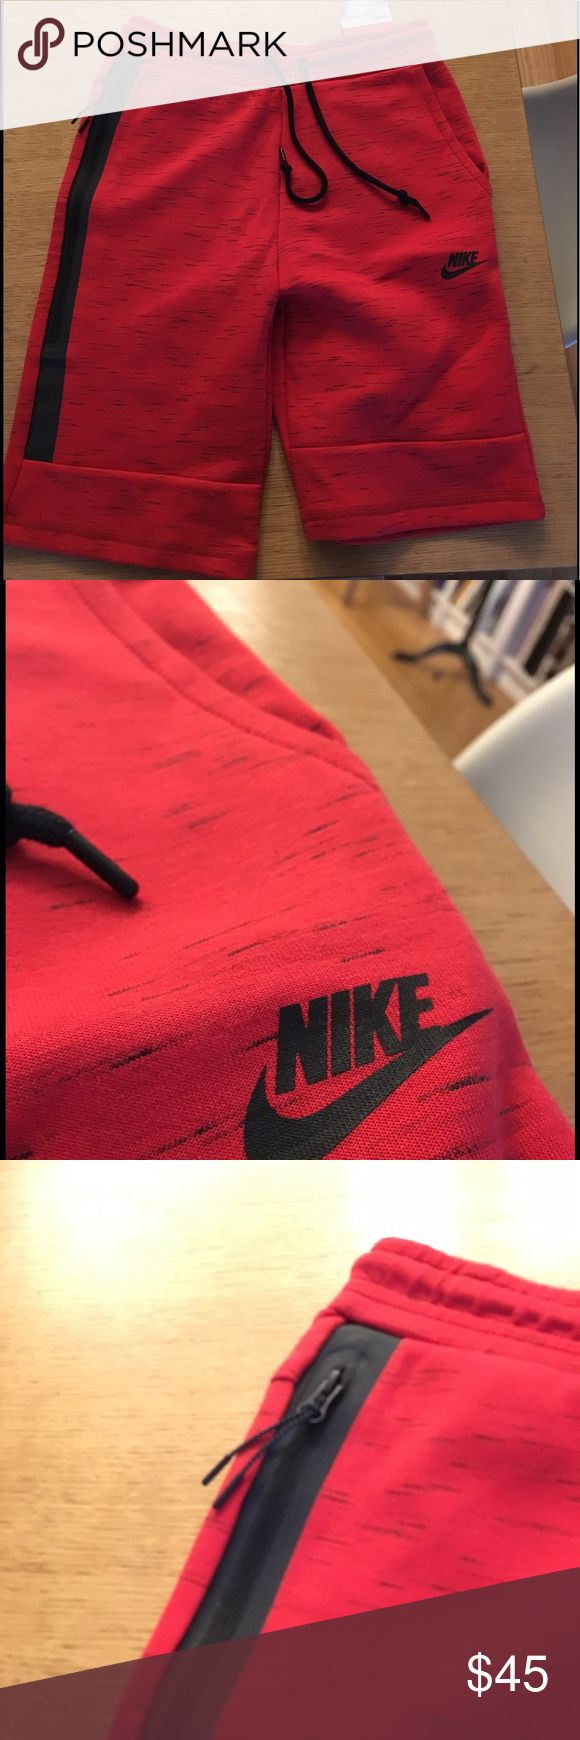 Red Nike Tech Shorts This short is really comfortable for anything really- sports, working out, or just chilling everyday. Nike Shorts Athletic